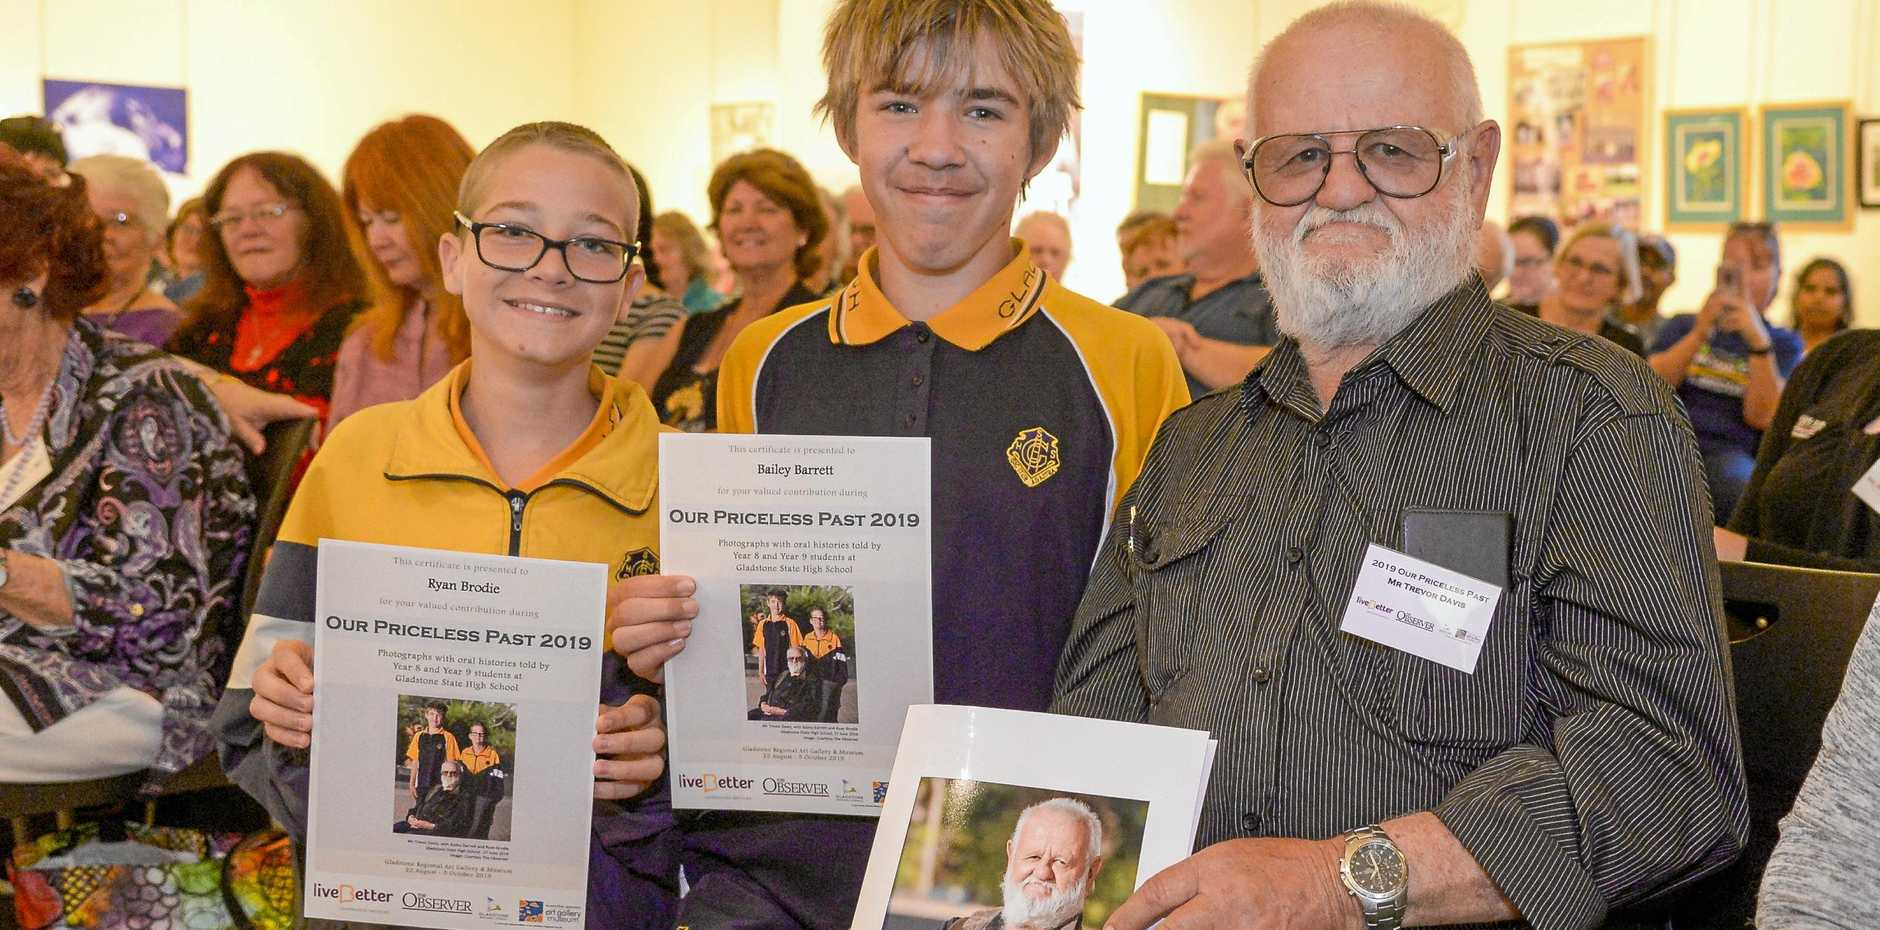 The 2019 Our Priceless Past exhibition was launched at Gladstone Regional Art Gallery and Museum on Thursday 22 August. PICTURED: Trevor Davis, Bailey Barrett and Ryan Brodie.